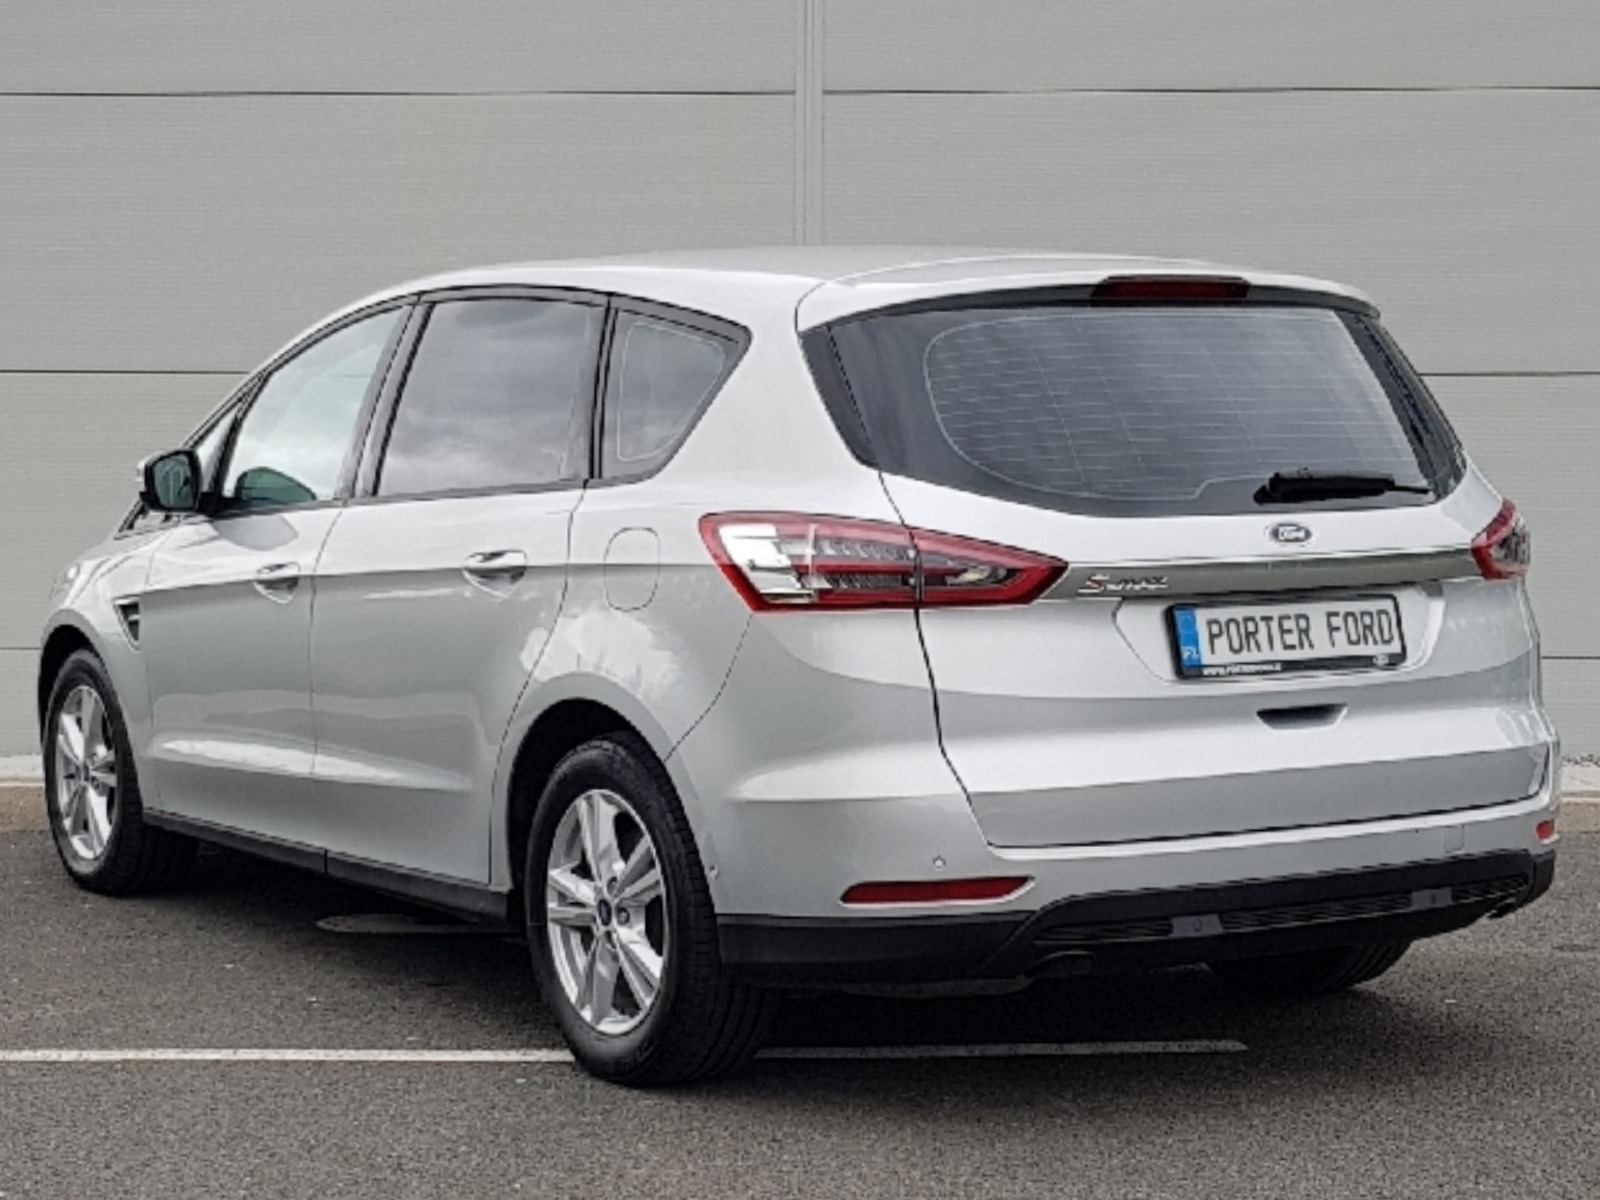 2016 Ford Galaxy, Porter Ford, Sligo